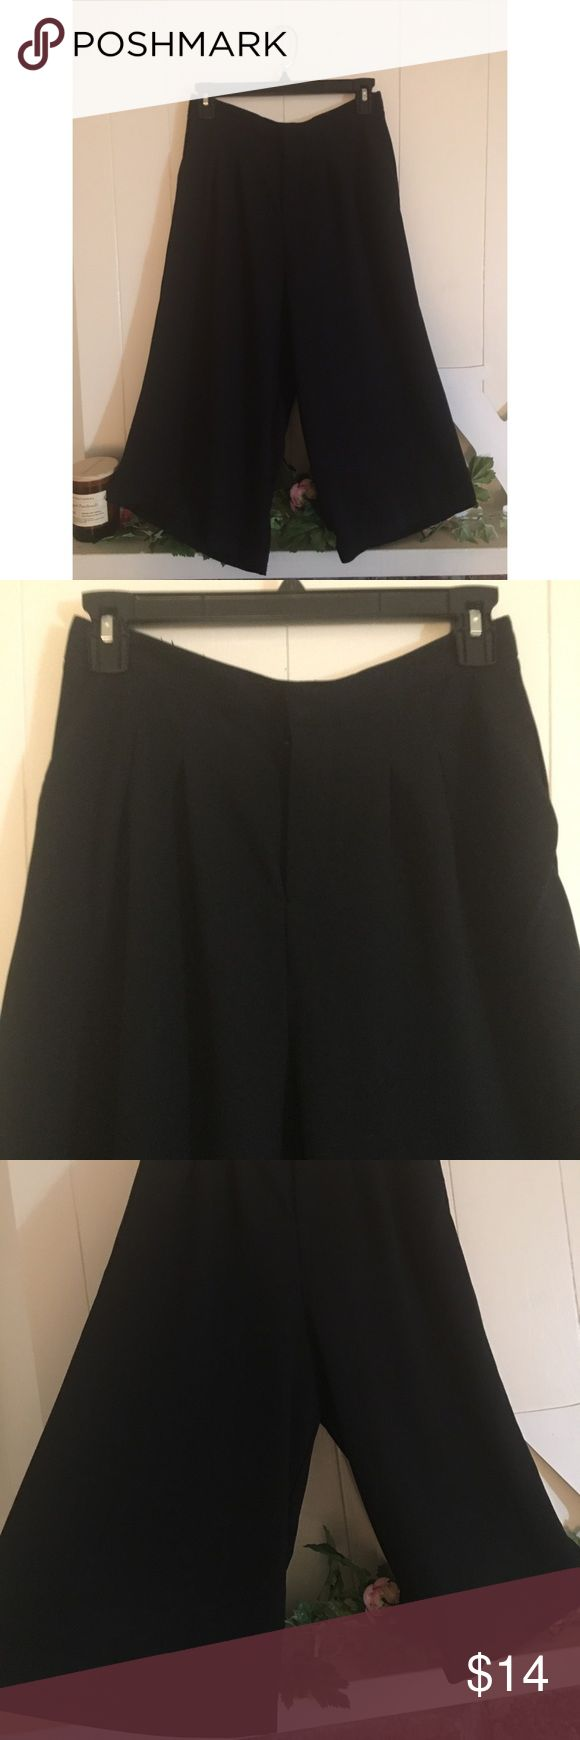 "Forever 21 Minimal Black Hi Waisted Culottes 🏁 Super chic and minimal tailored culottes. Only tried on, too small for me! Best for a 25"" - 27"" waist. High waisted with pleated details, button and hook closure, and wide flowy legs that hit mid-calf. Forever 21 Pants Ankle & Cropped"